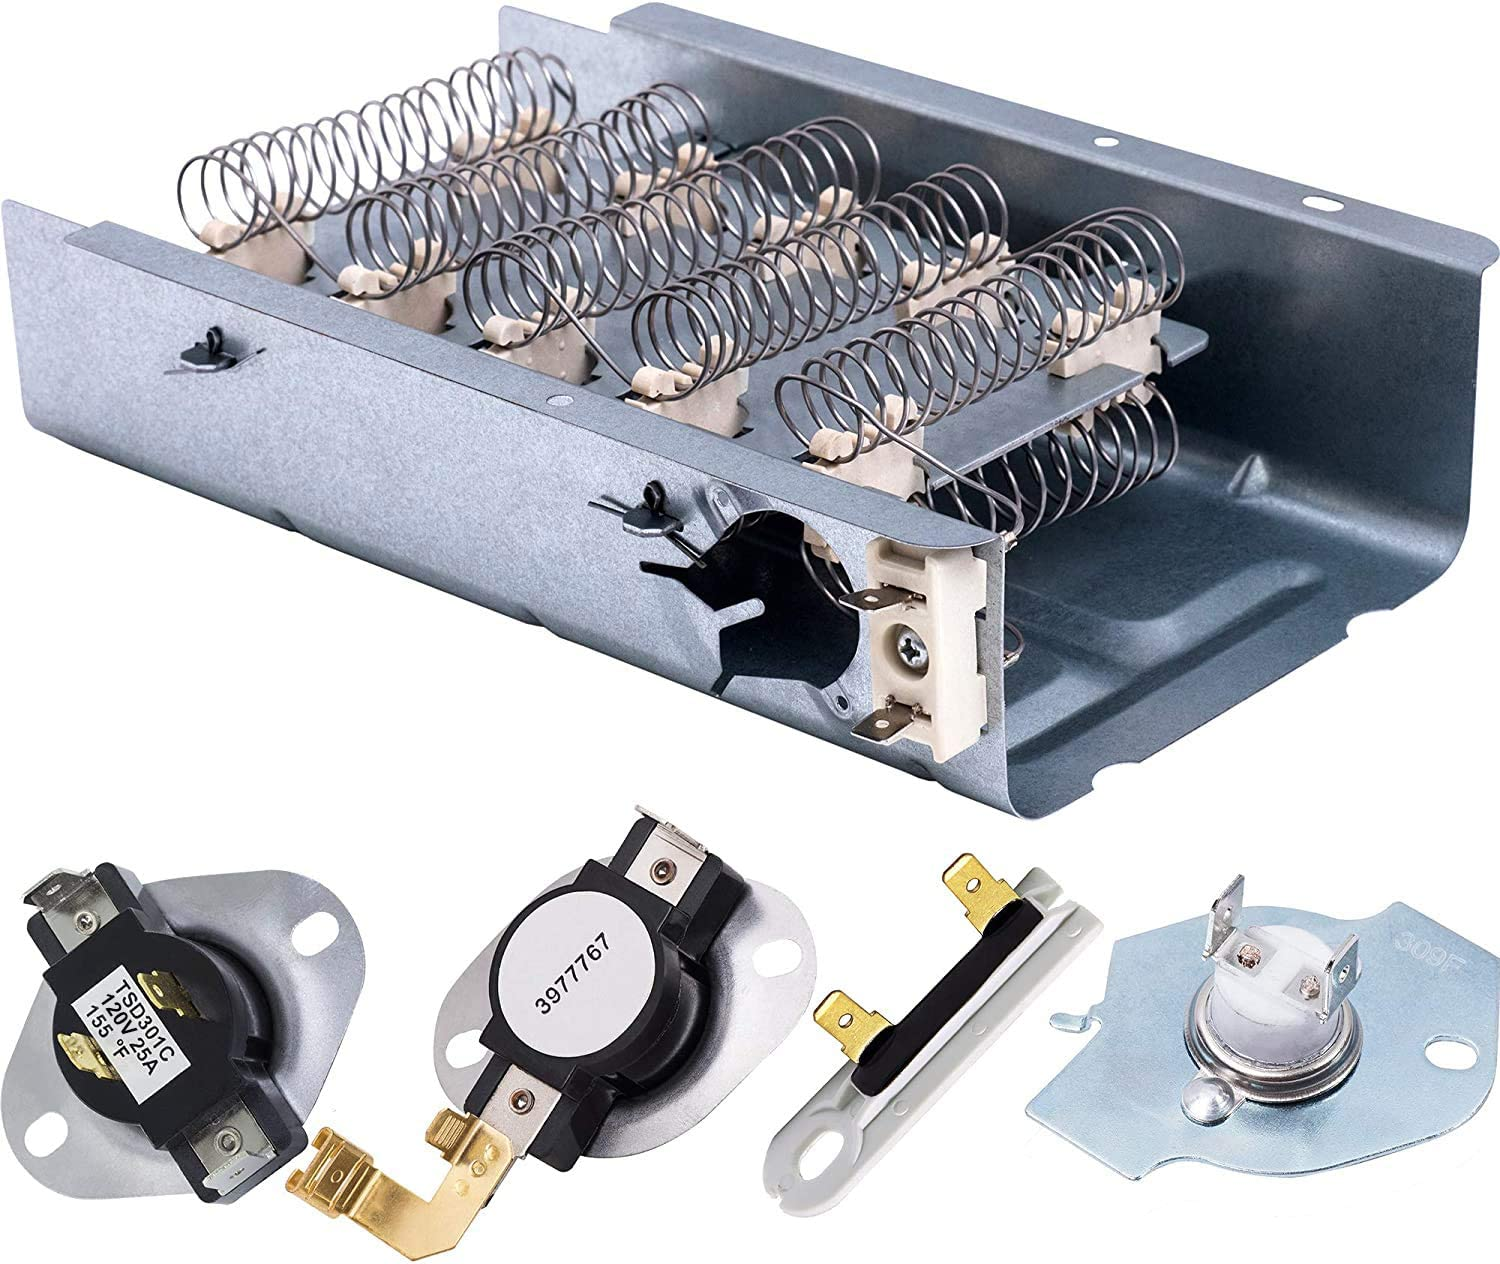 [NEW UPGRADED] 279838 Dryer Heating Element 3387134 3977767 Ther